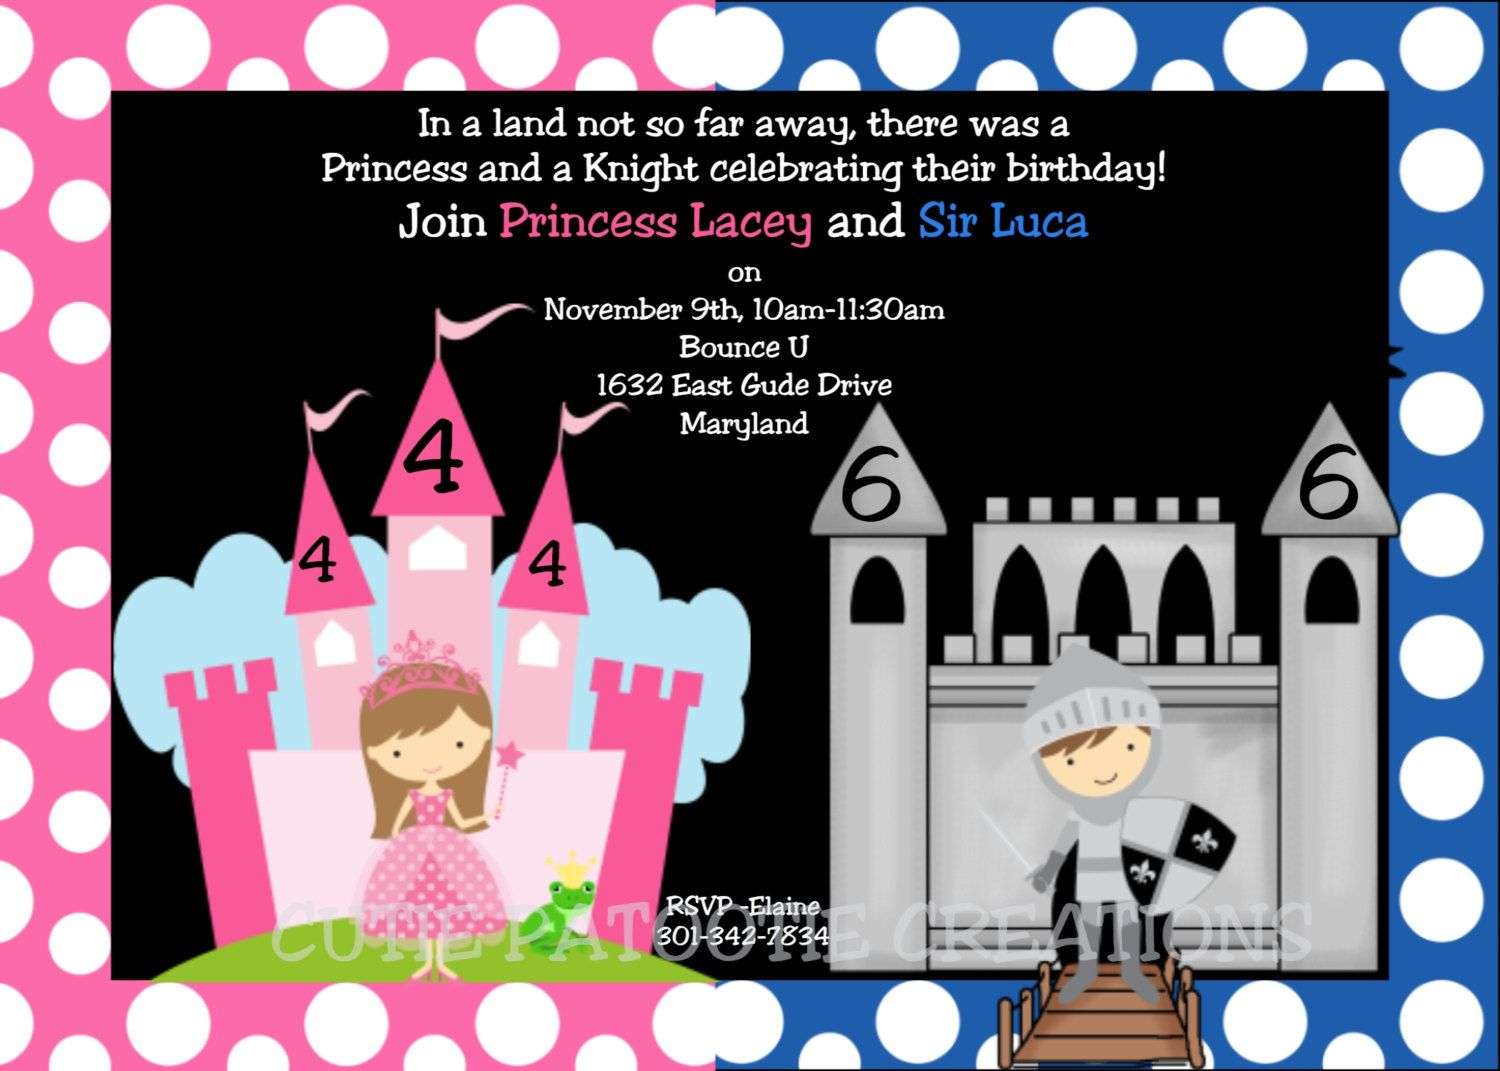 Princess Knight Birthday Invitation Party for Twins or Siblings – Princess and Knight Party Invitations